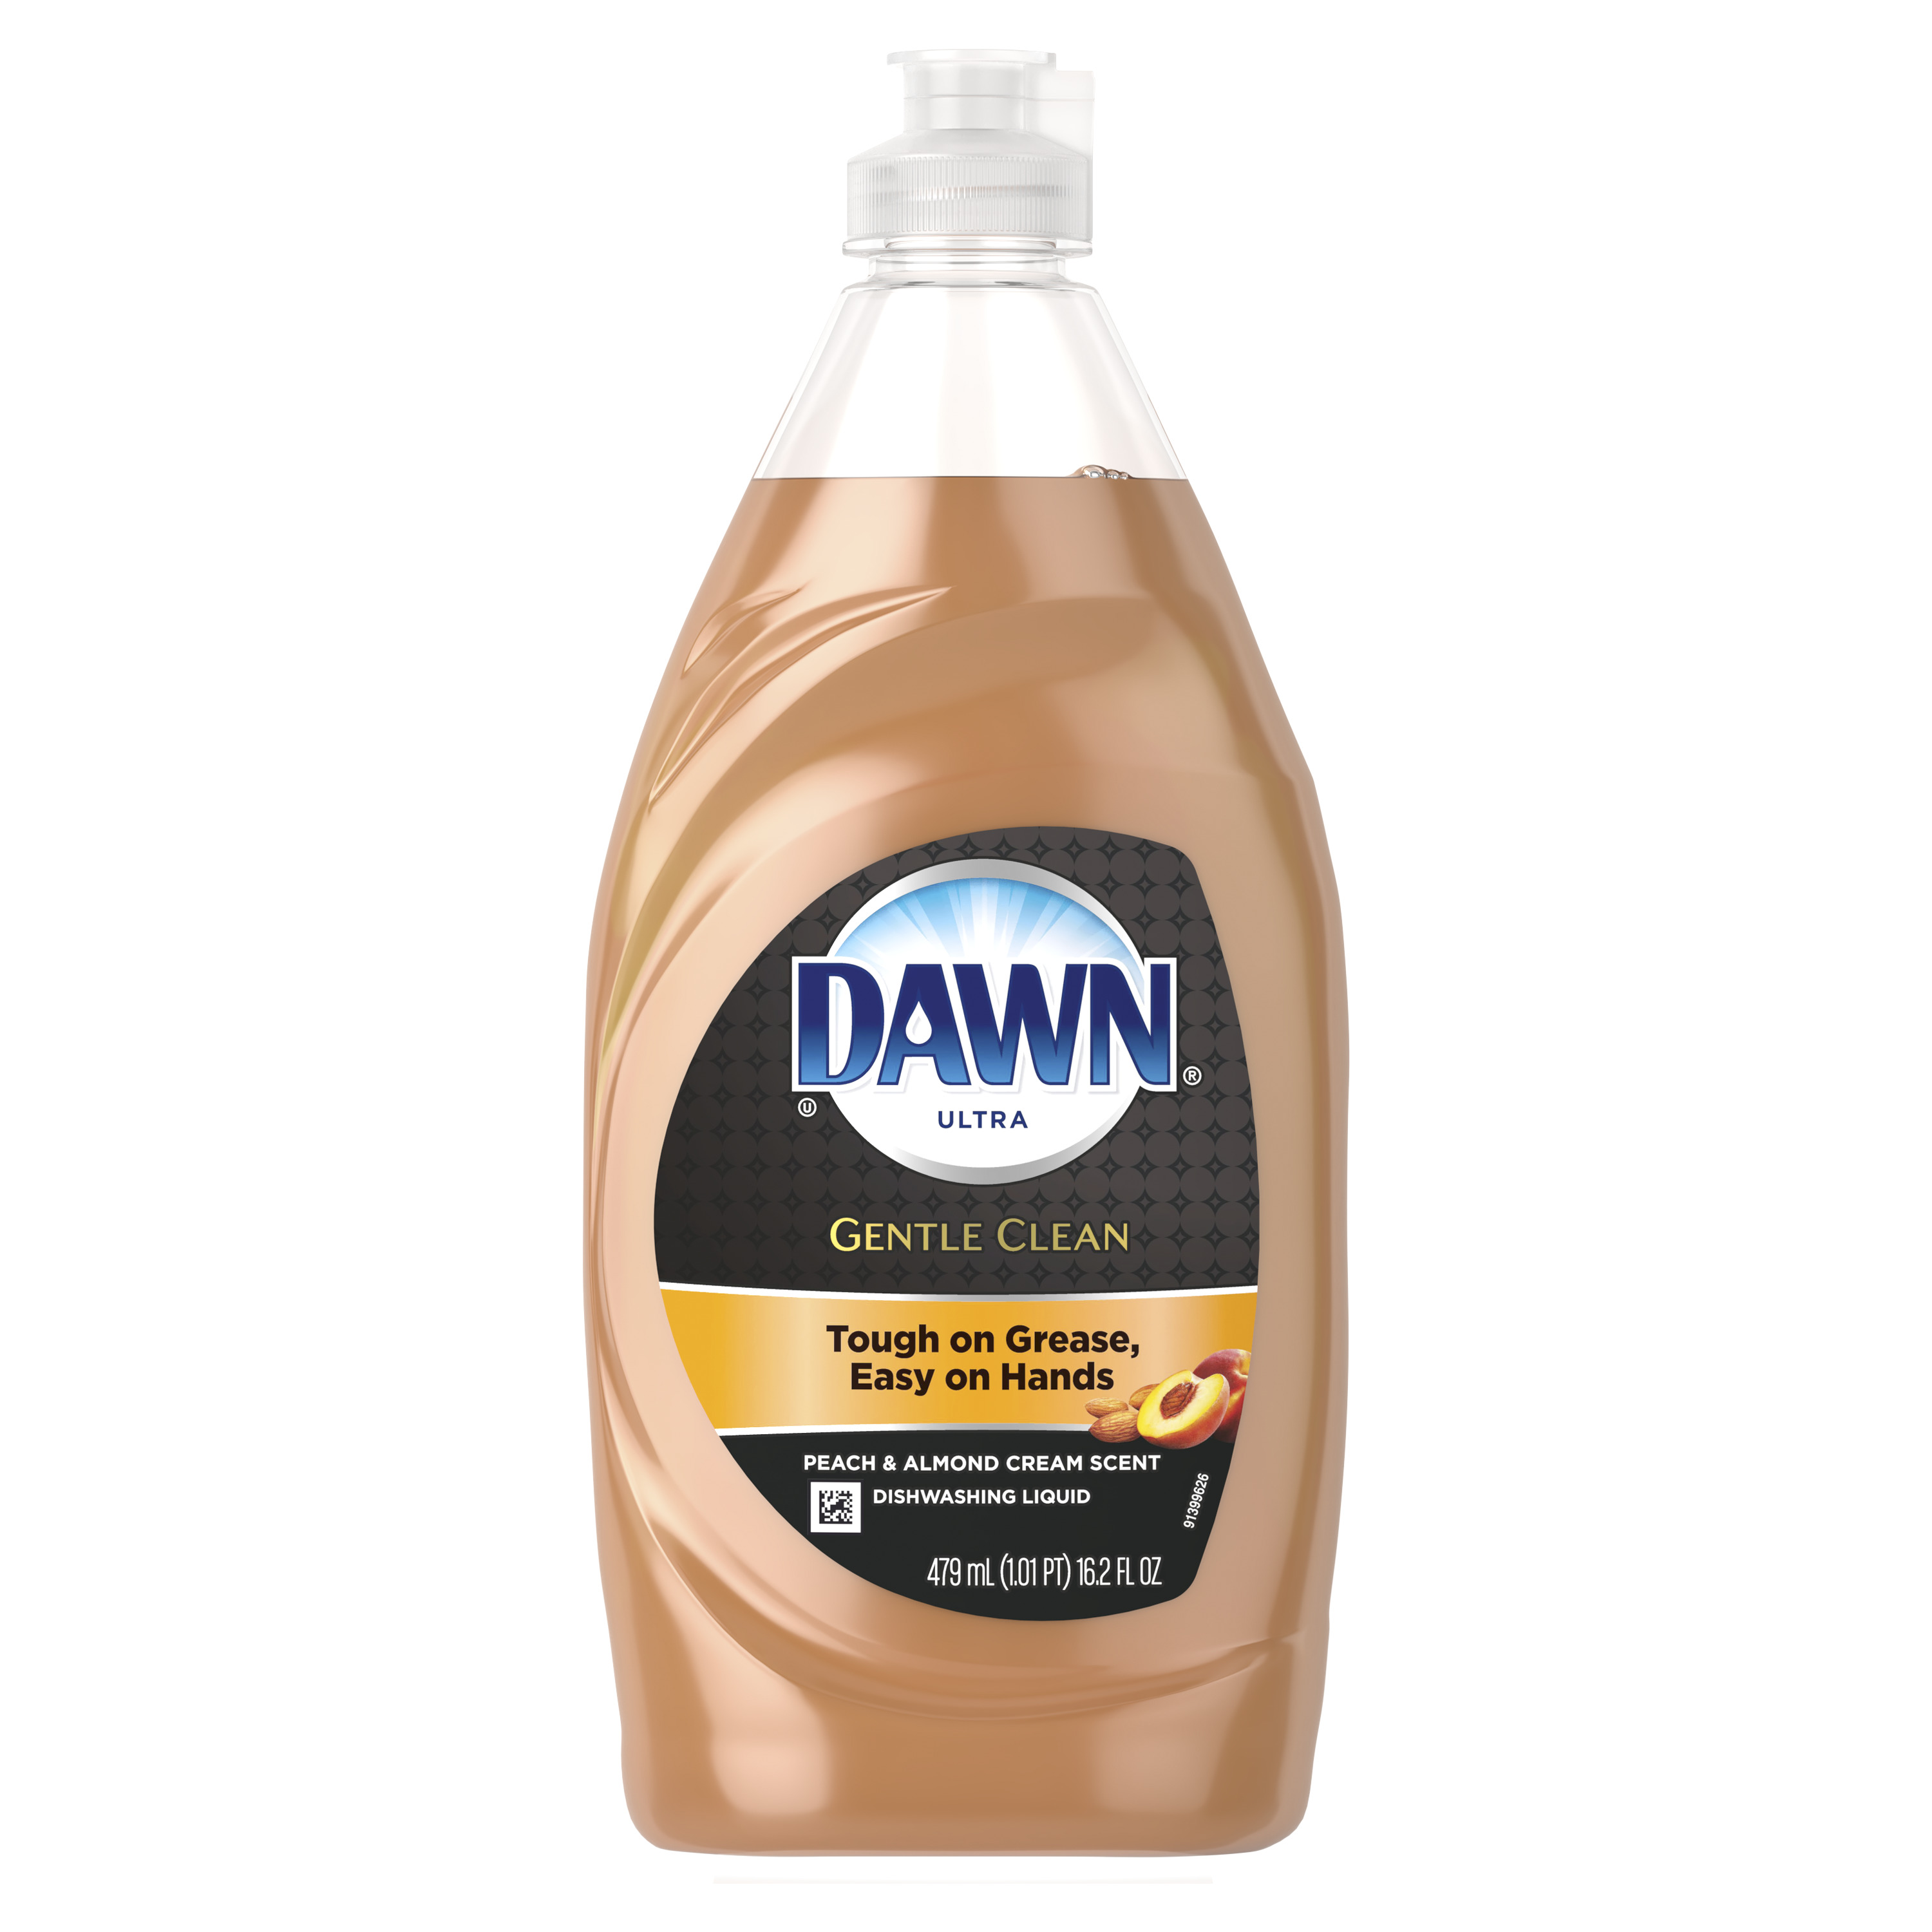 Dawn Gentle Clean Dishwashing Liquid Dish Soap Peach Almond 16.2 oz